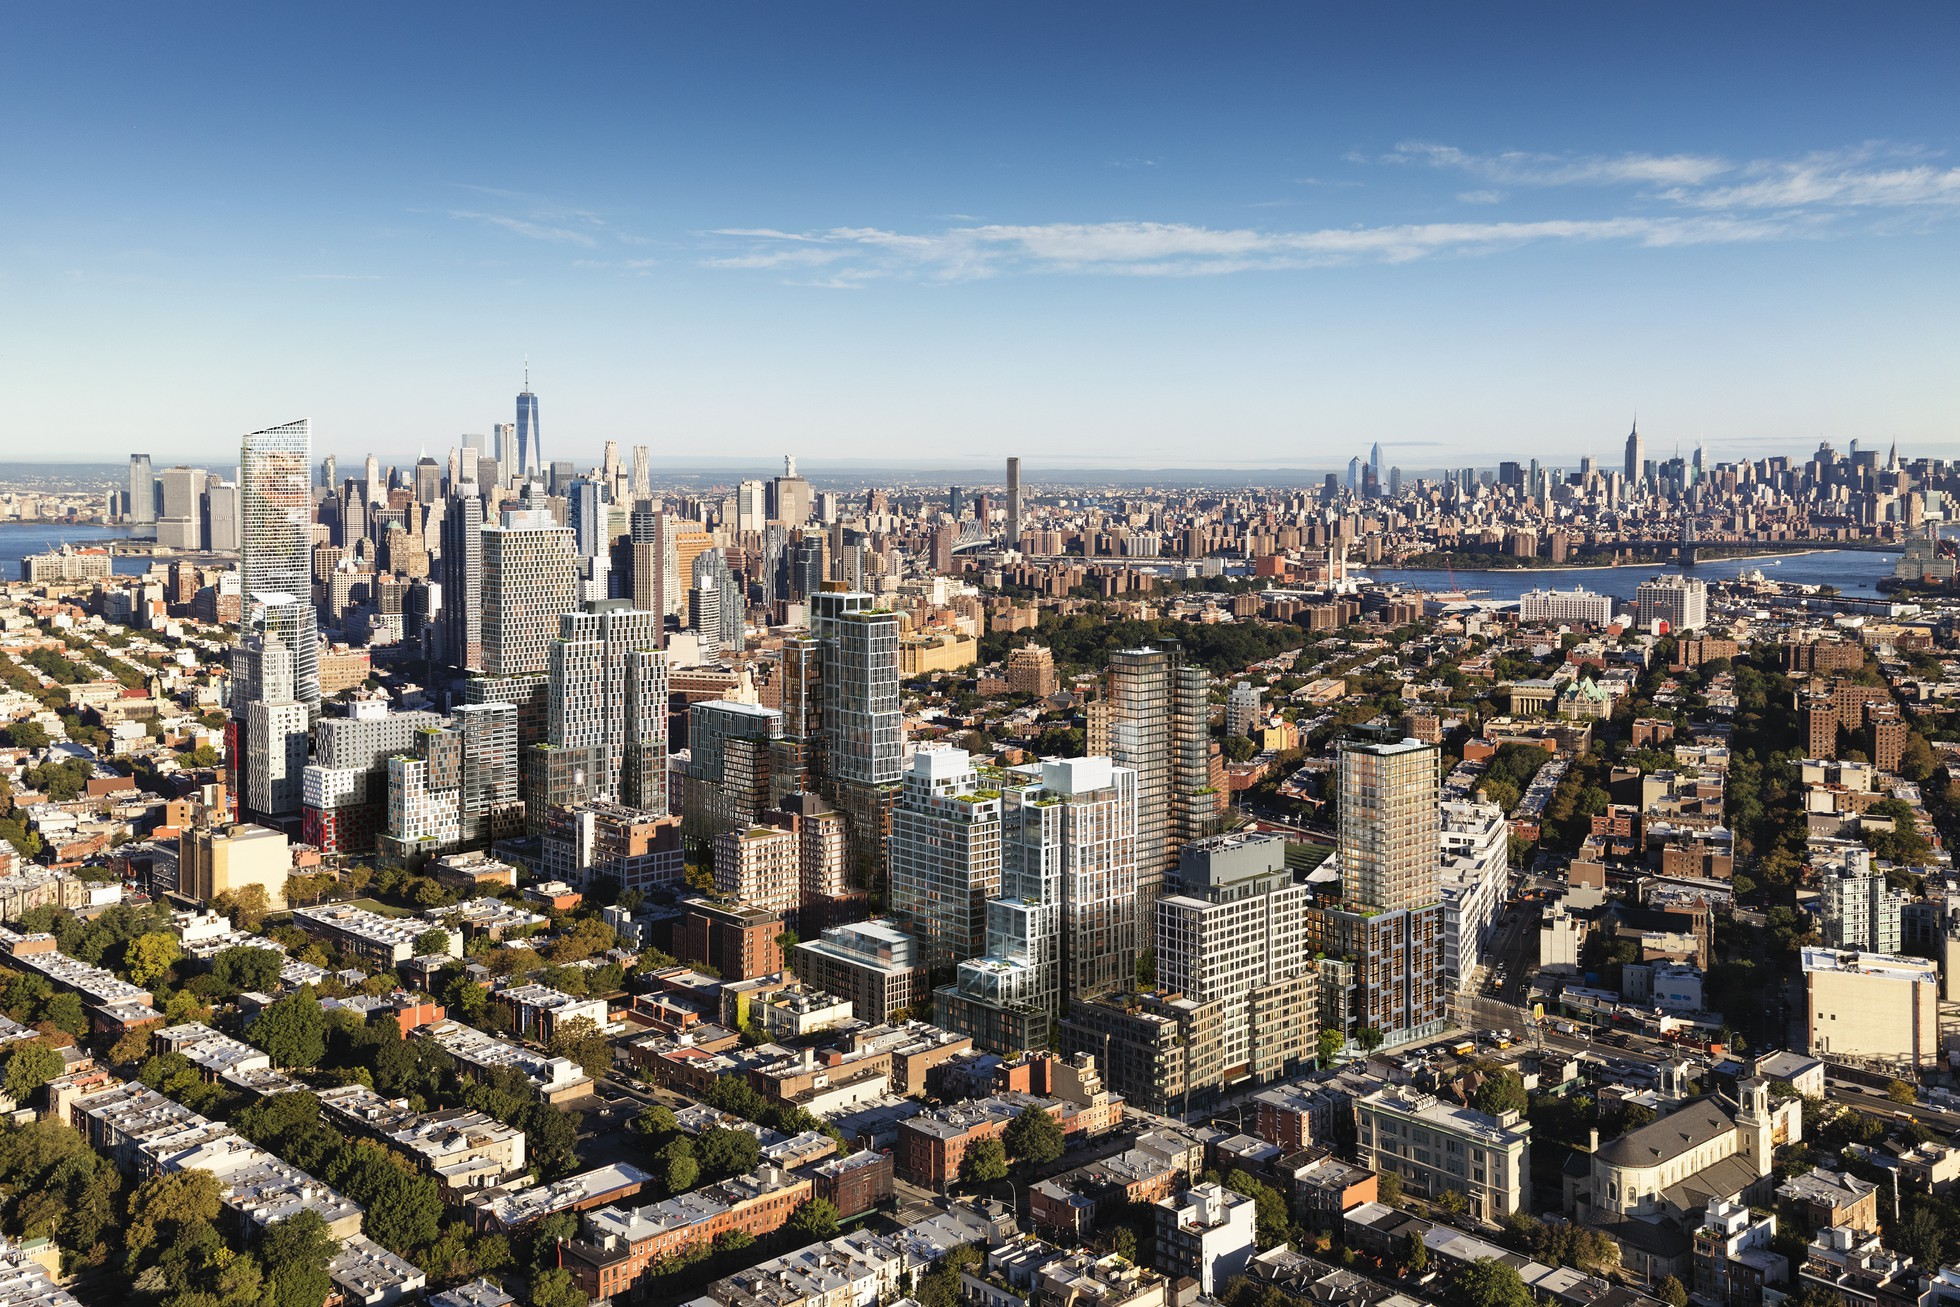 Pacific Park, new developments, major develpments, downtown brooklyn, greenland forest city, L & L Mag